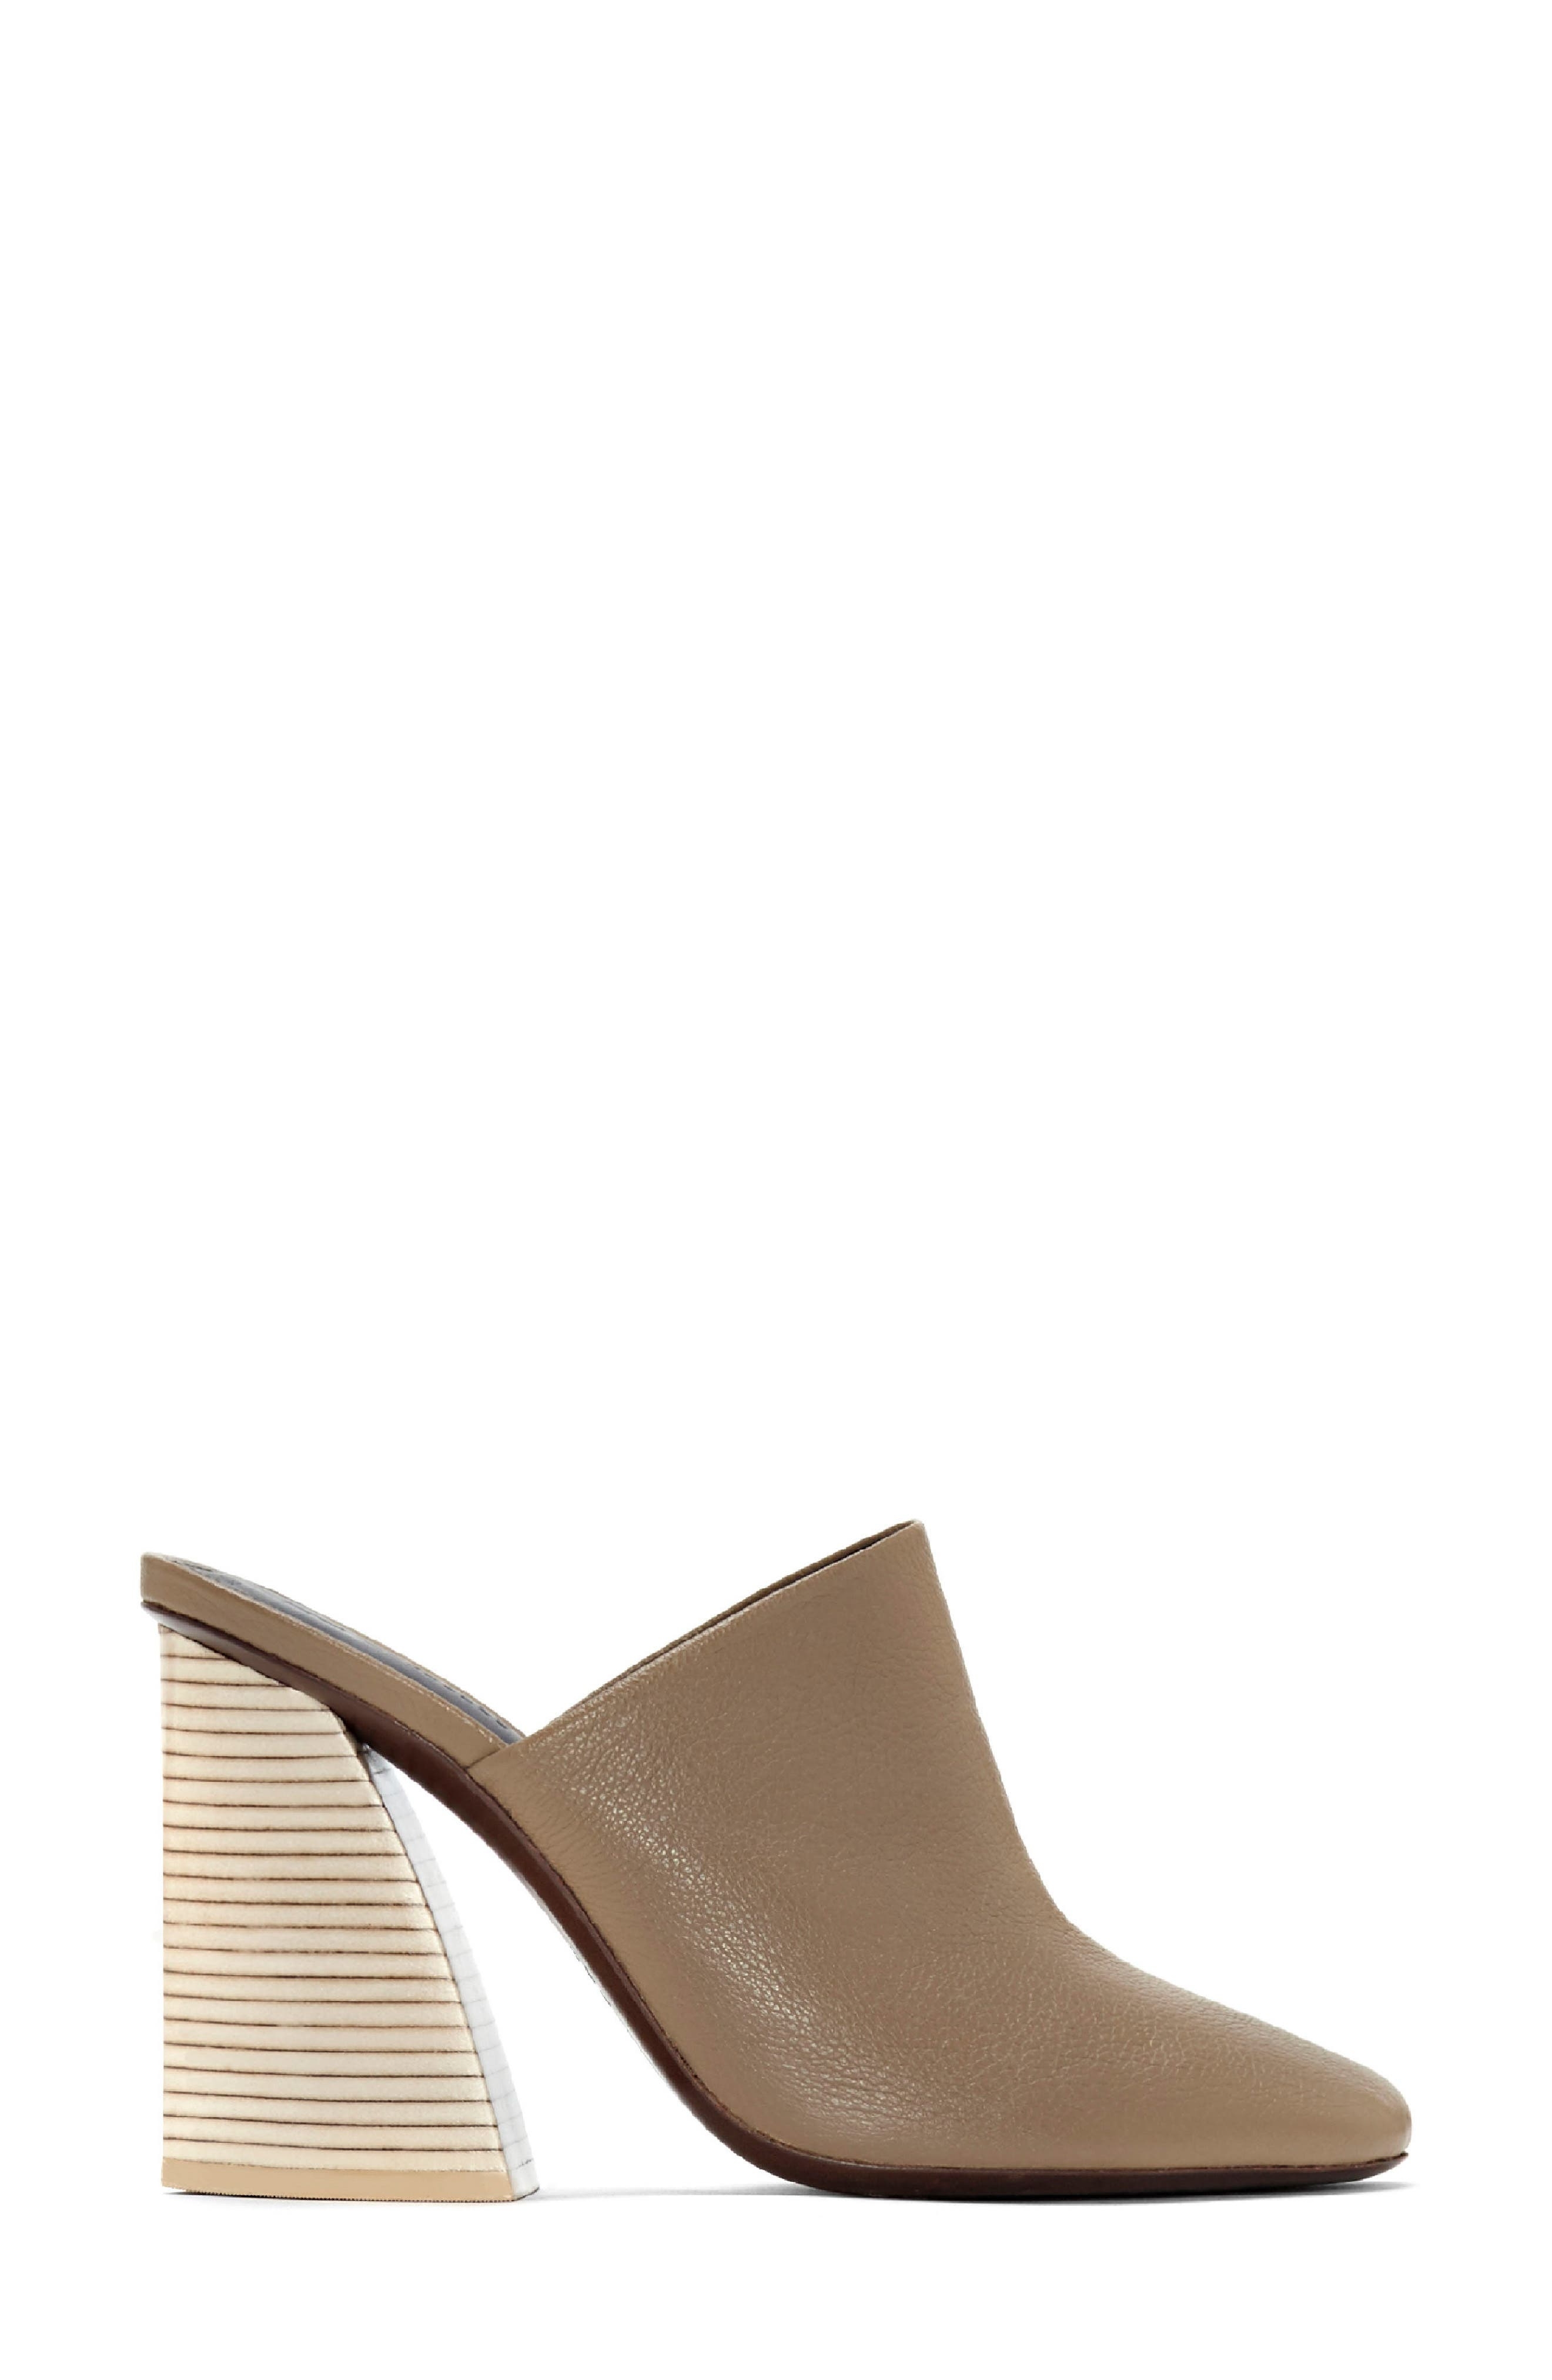 Aria Mule,                             Alternate thumbnail 3, color,                             Taupe